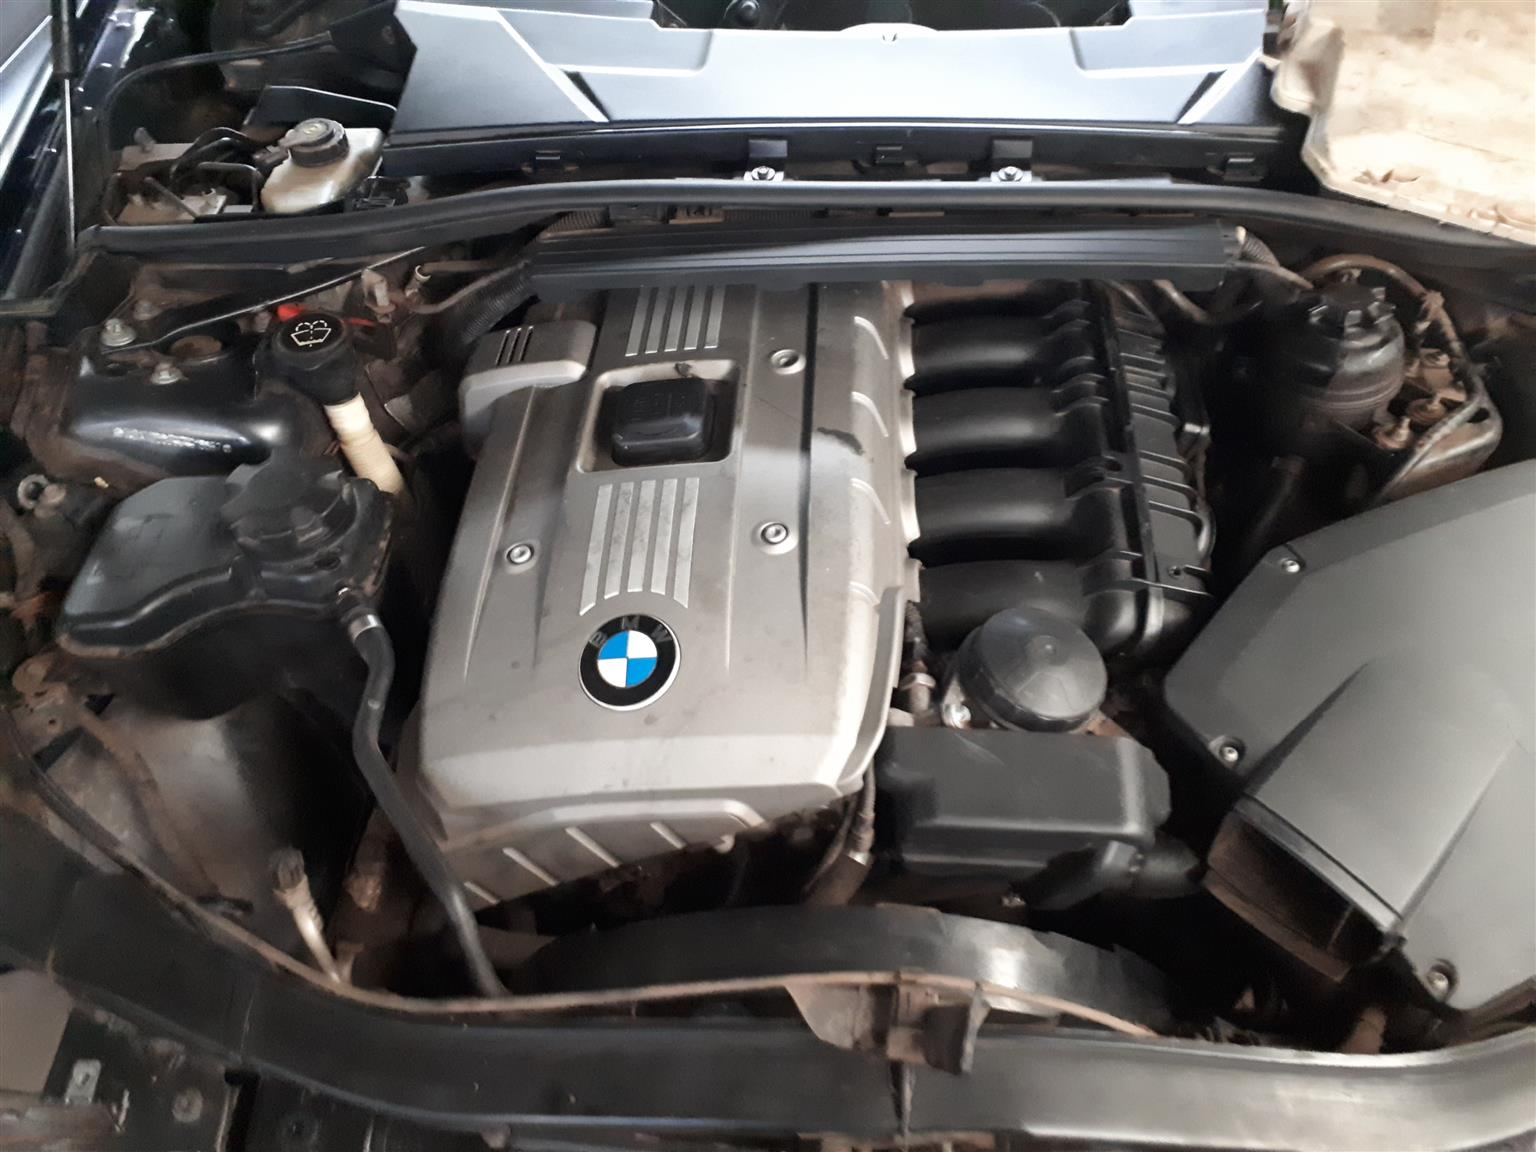 Bmw E90 325i N52 Engine For Parts Spares Beemer World The Best Junk Mail